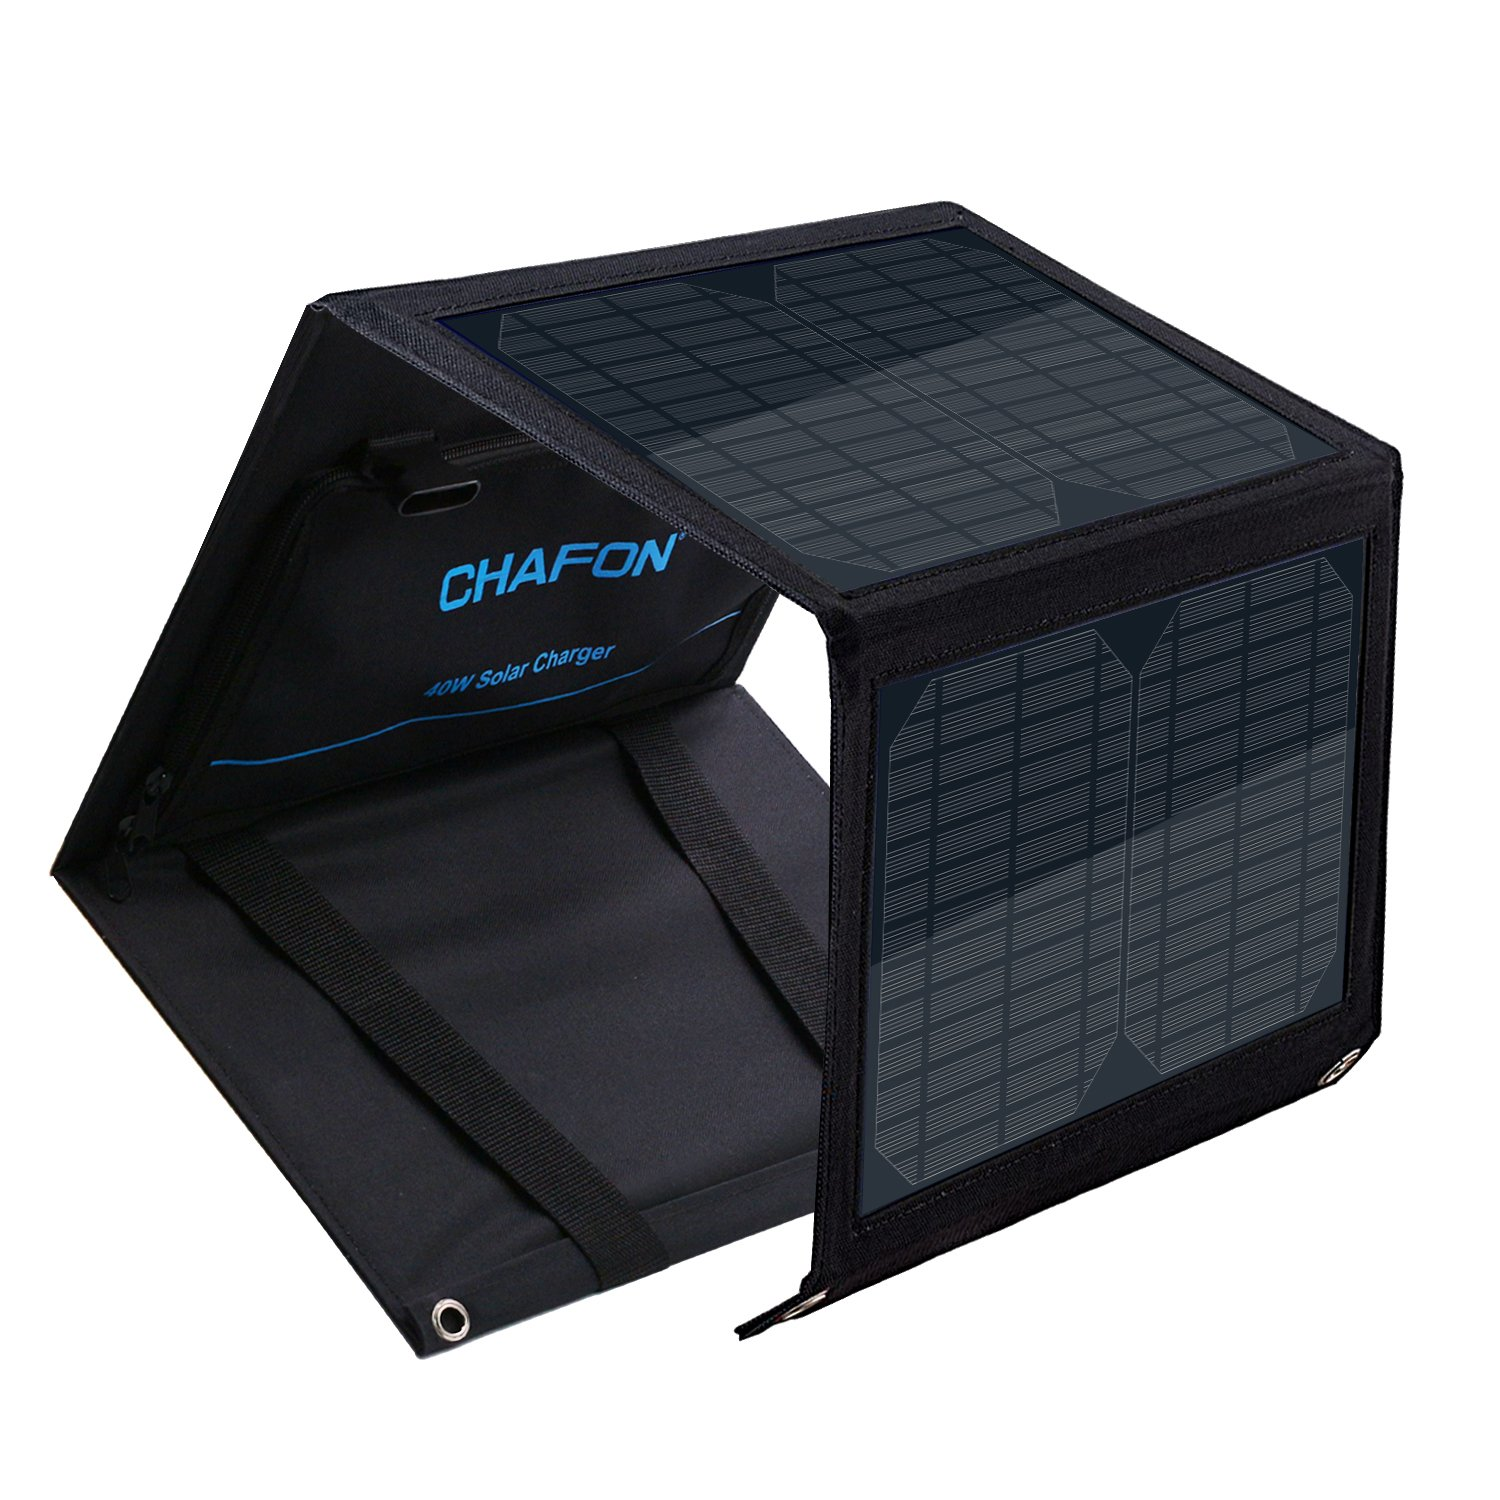 CHAFON 40W Foldable Solar Panel Charger Mono-Crystalline with 18V DC Output for Suaoki/Enkeeo/AIPER/ROCKPALS/Aeiusny/Webetop Portable Power Station,Laptop Tablet GPS,5V/2A USB Port for Camping